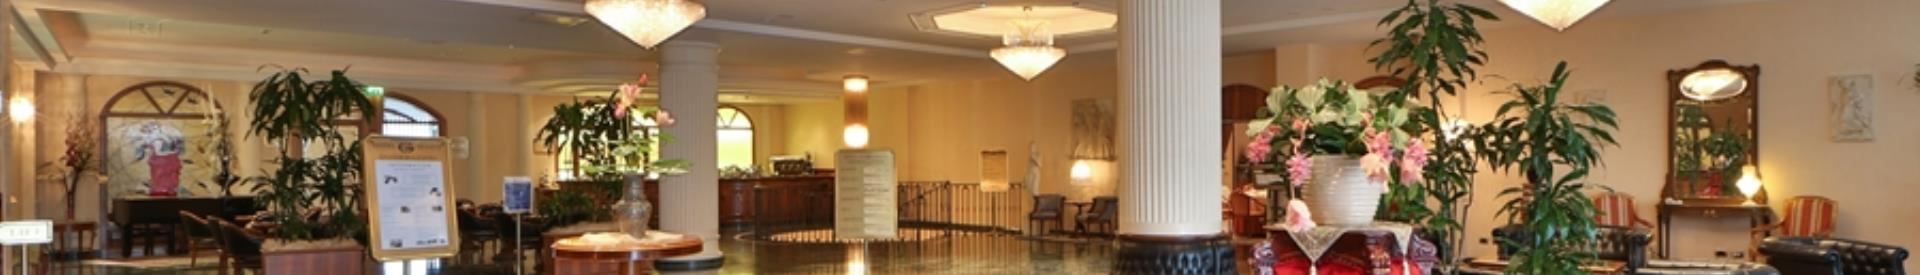 Spacious, elegant and refined, Best Western Hotel Globus City Forlì